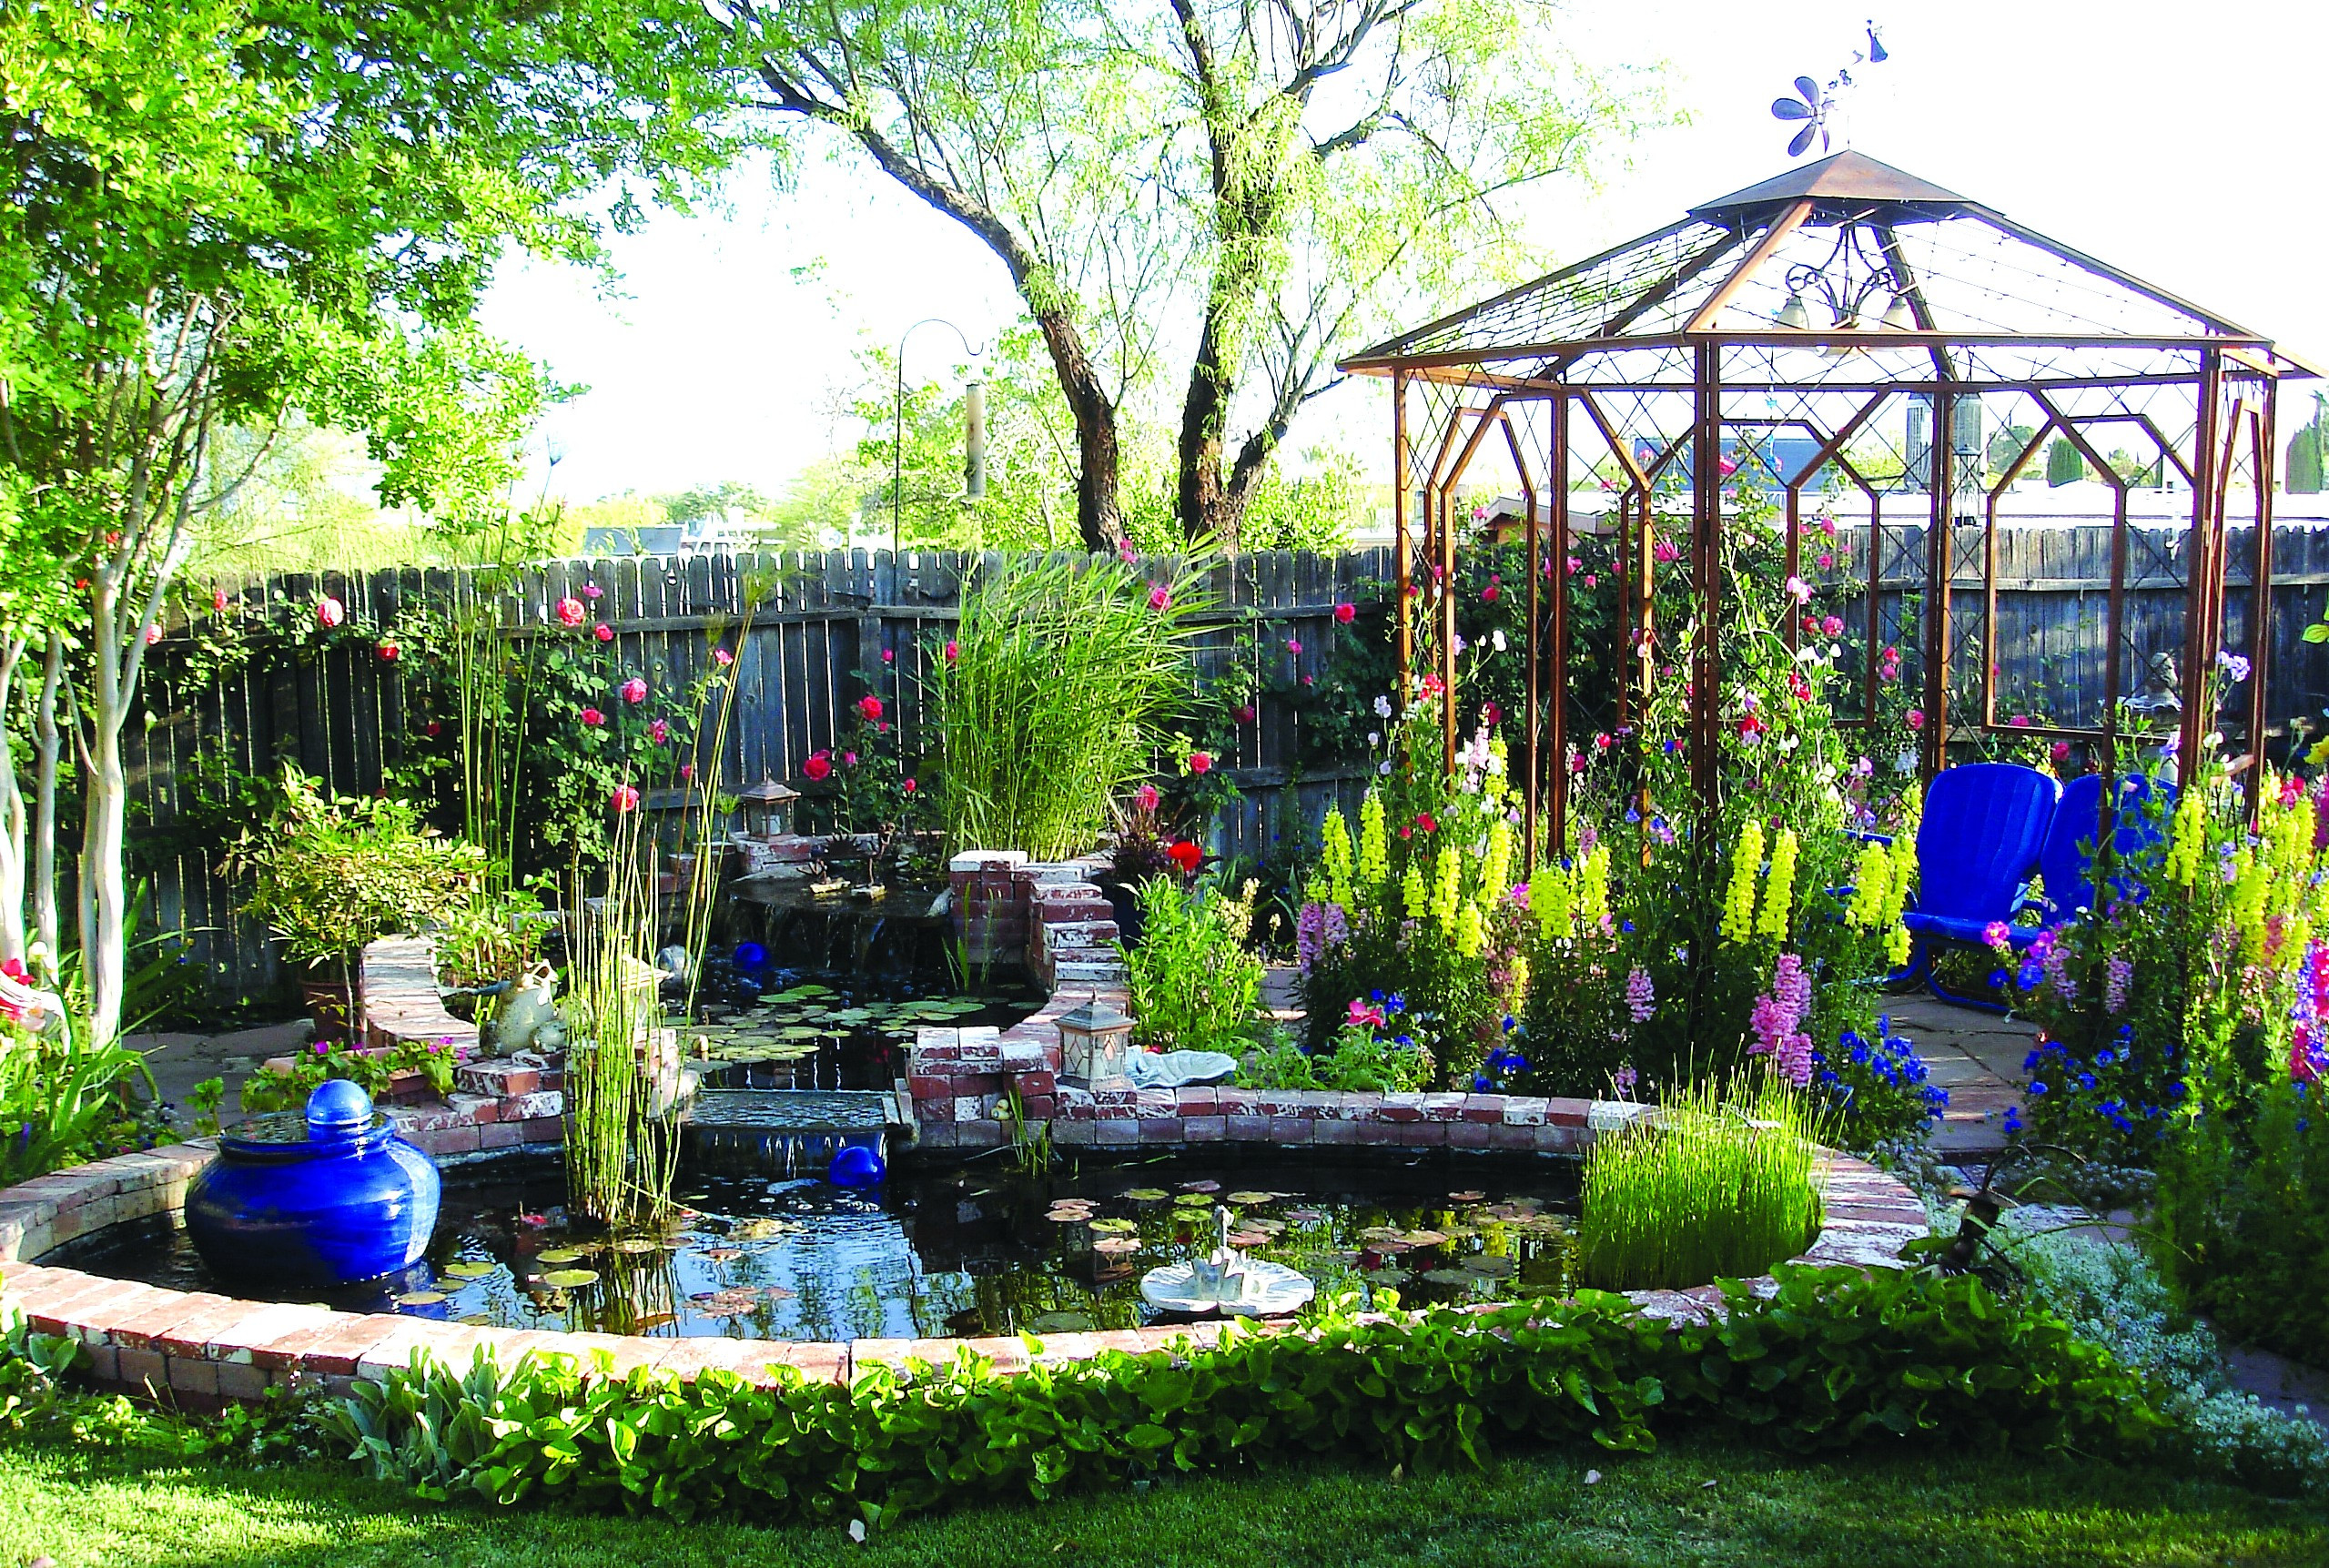 Johnson'S Backyard Garden  Add music and color to your backyard with watergardens